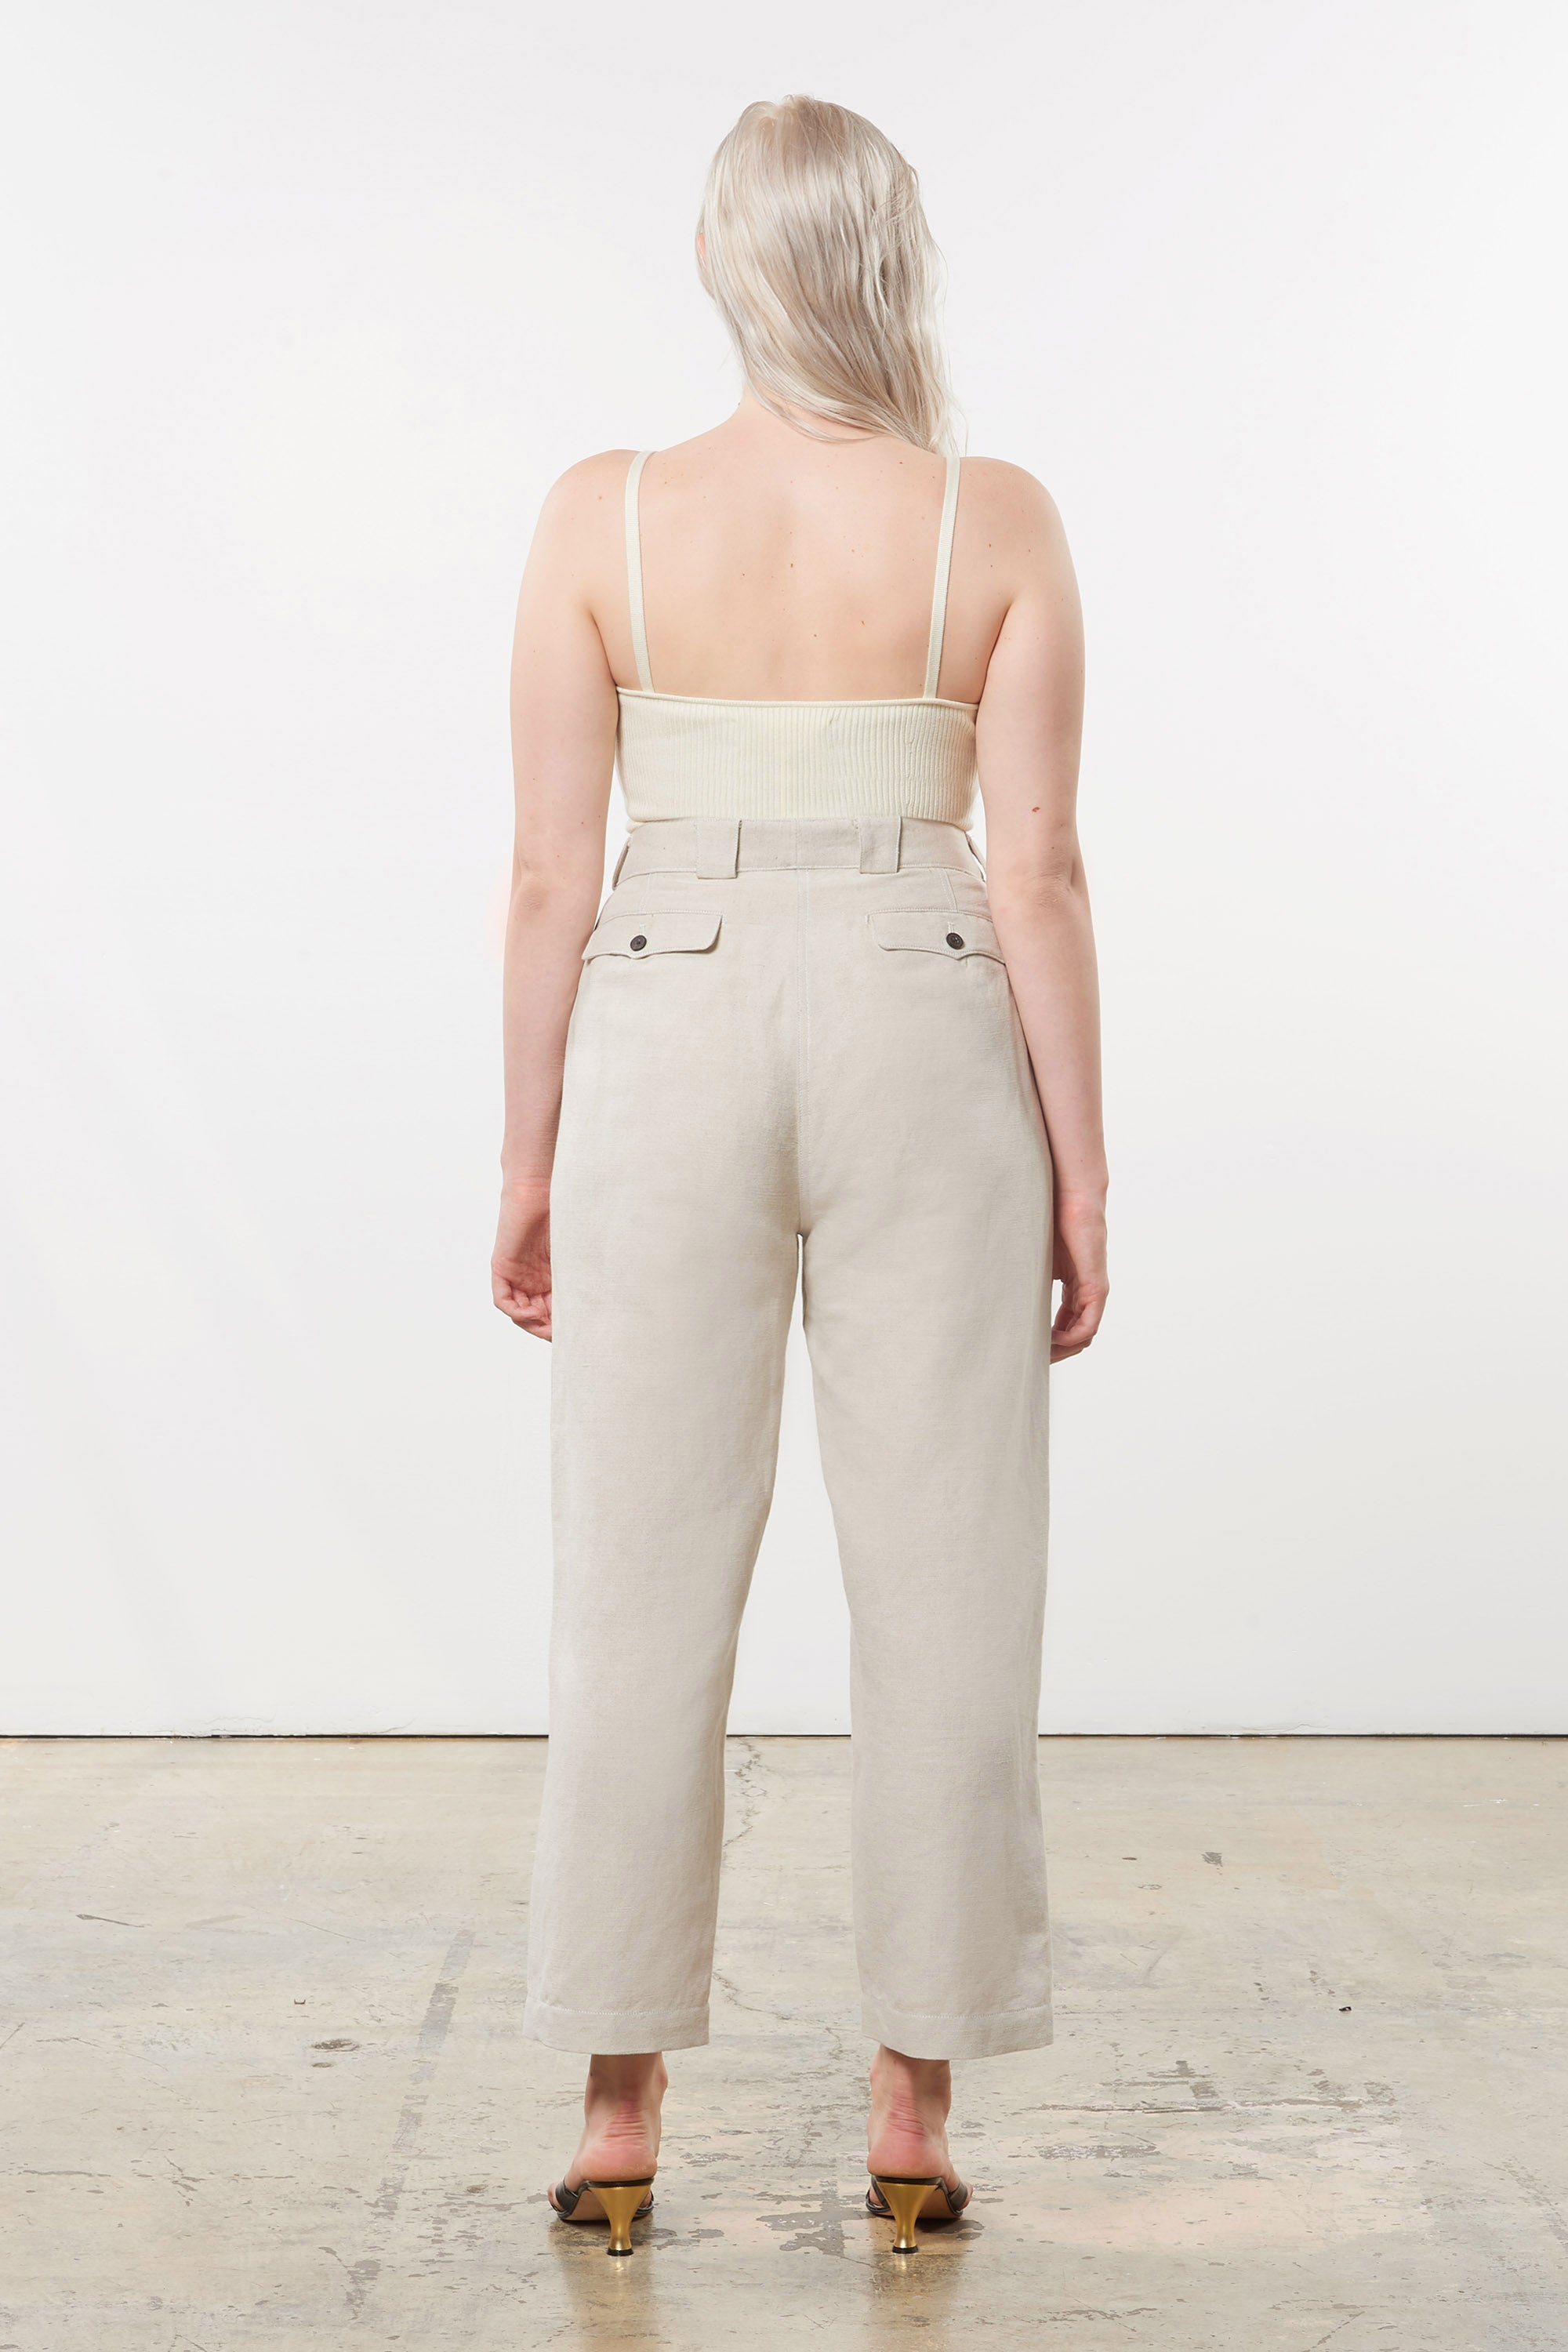 Mara Hoffman Extended Beige Jade Pant in linen and organic cotton (back)